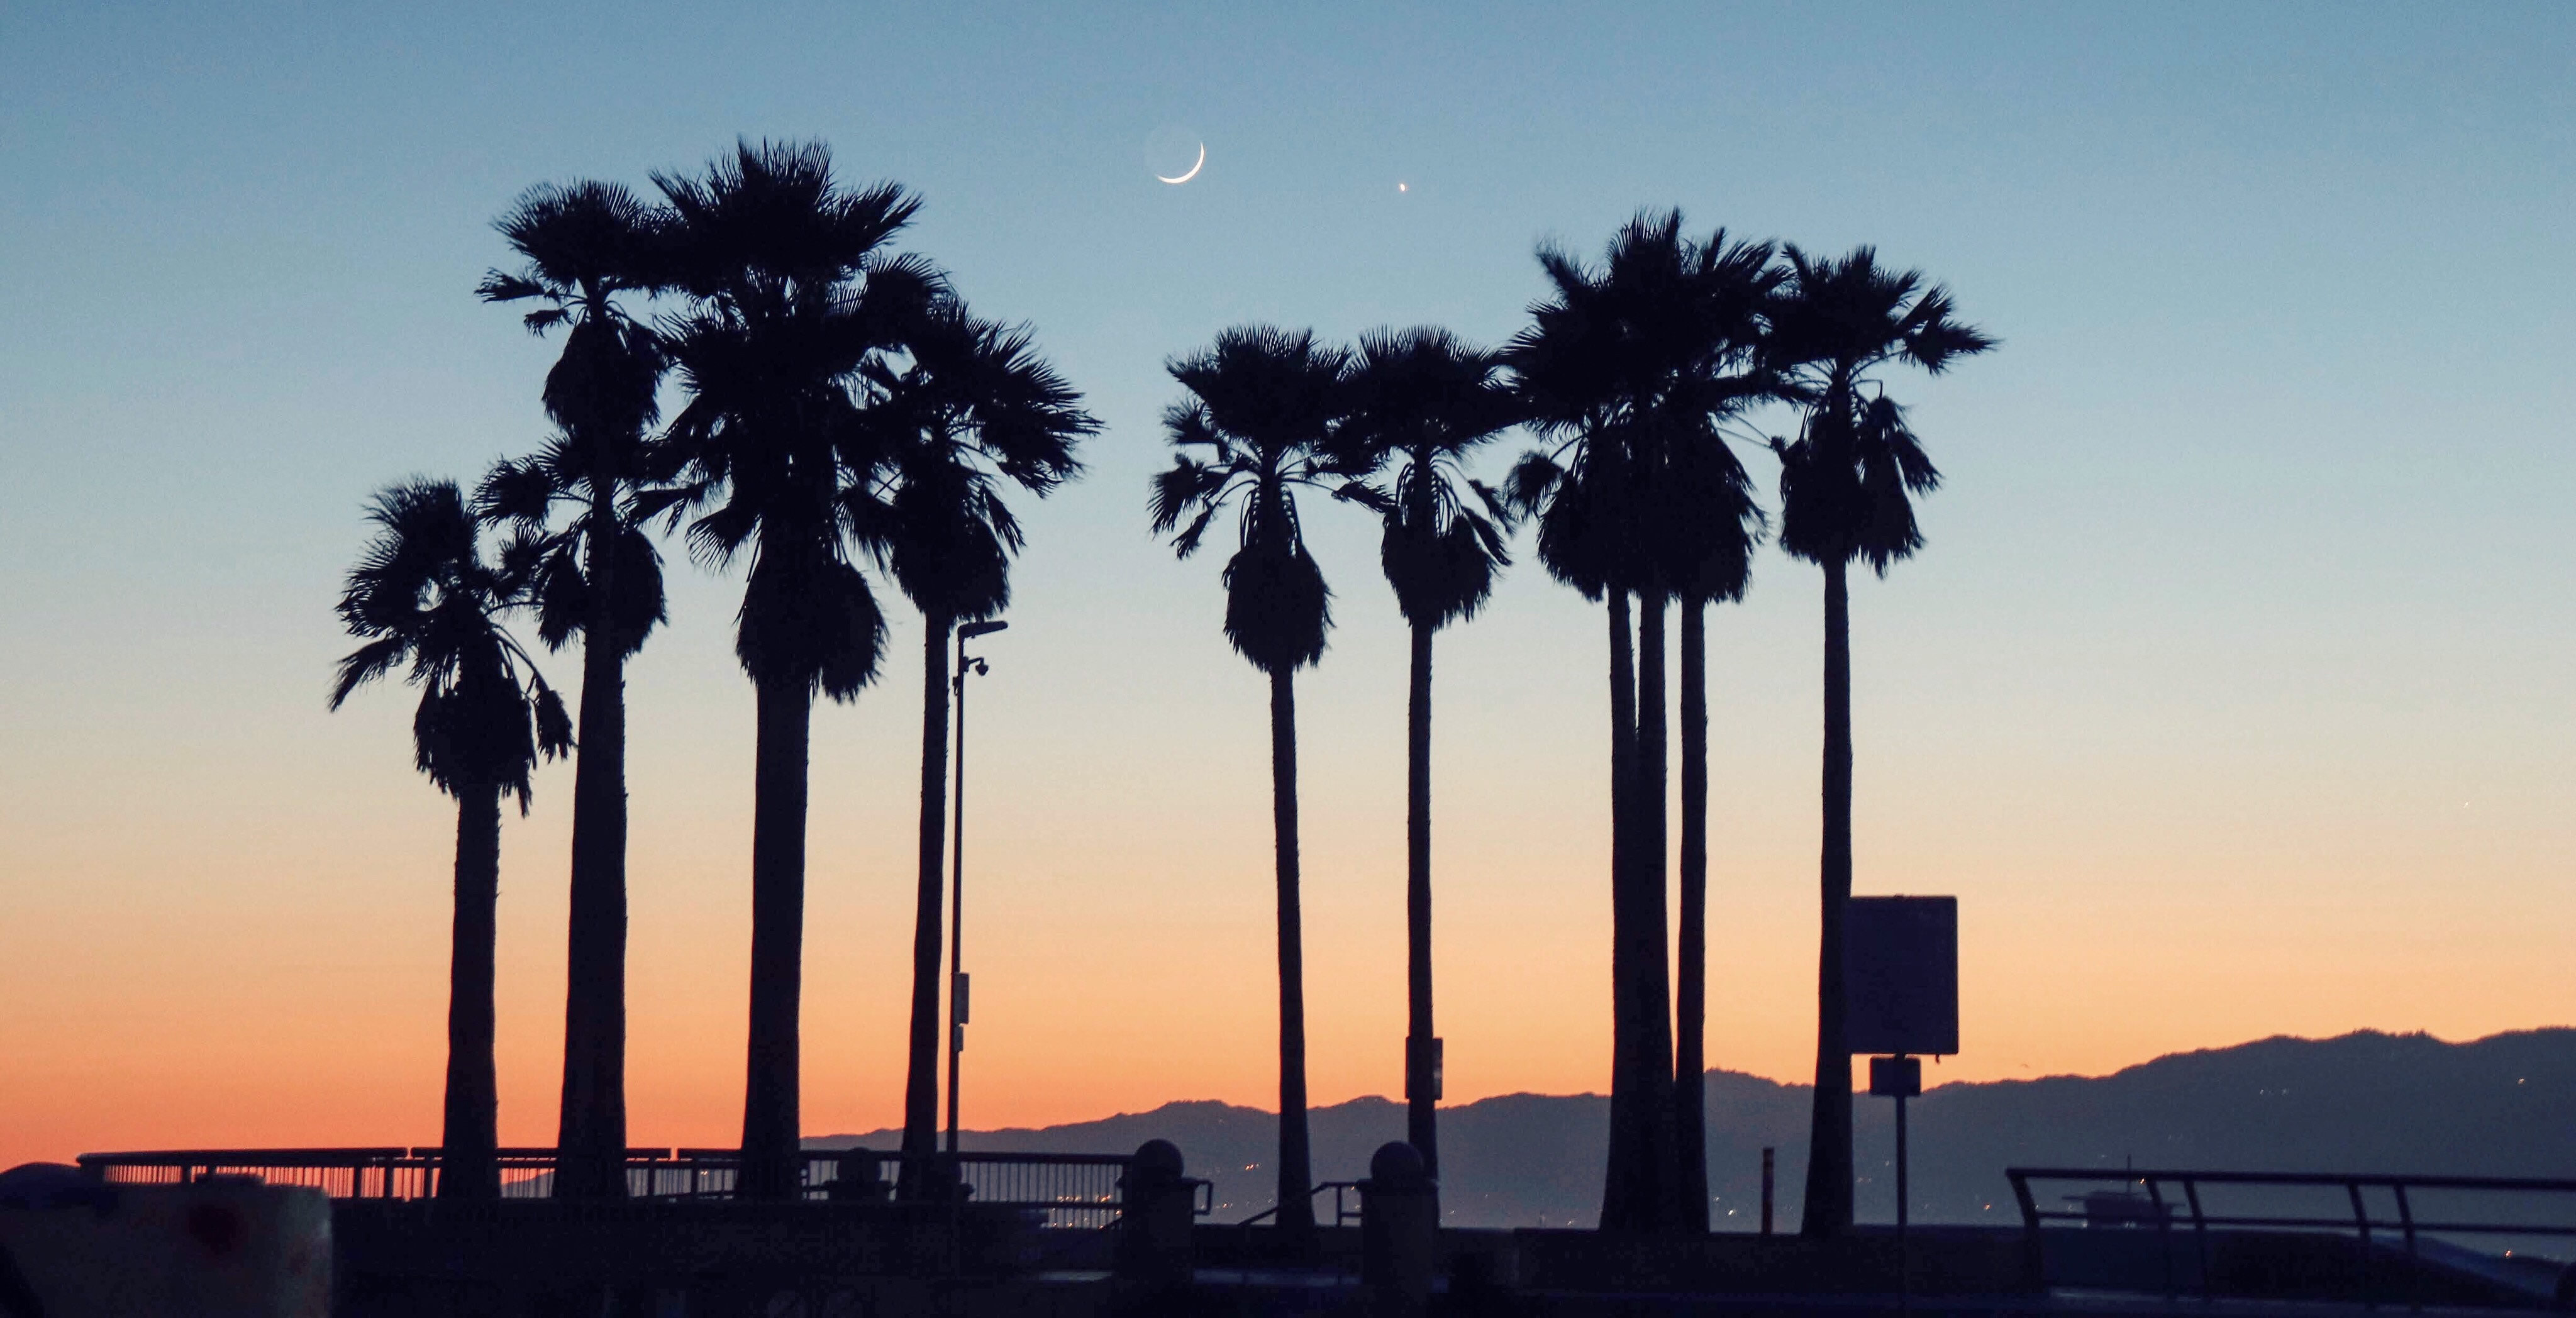 Insiders' tips - Why Southern California is one of the top destinations in the world